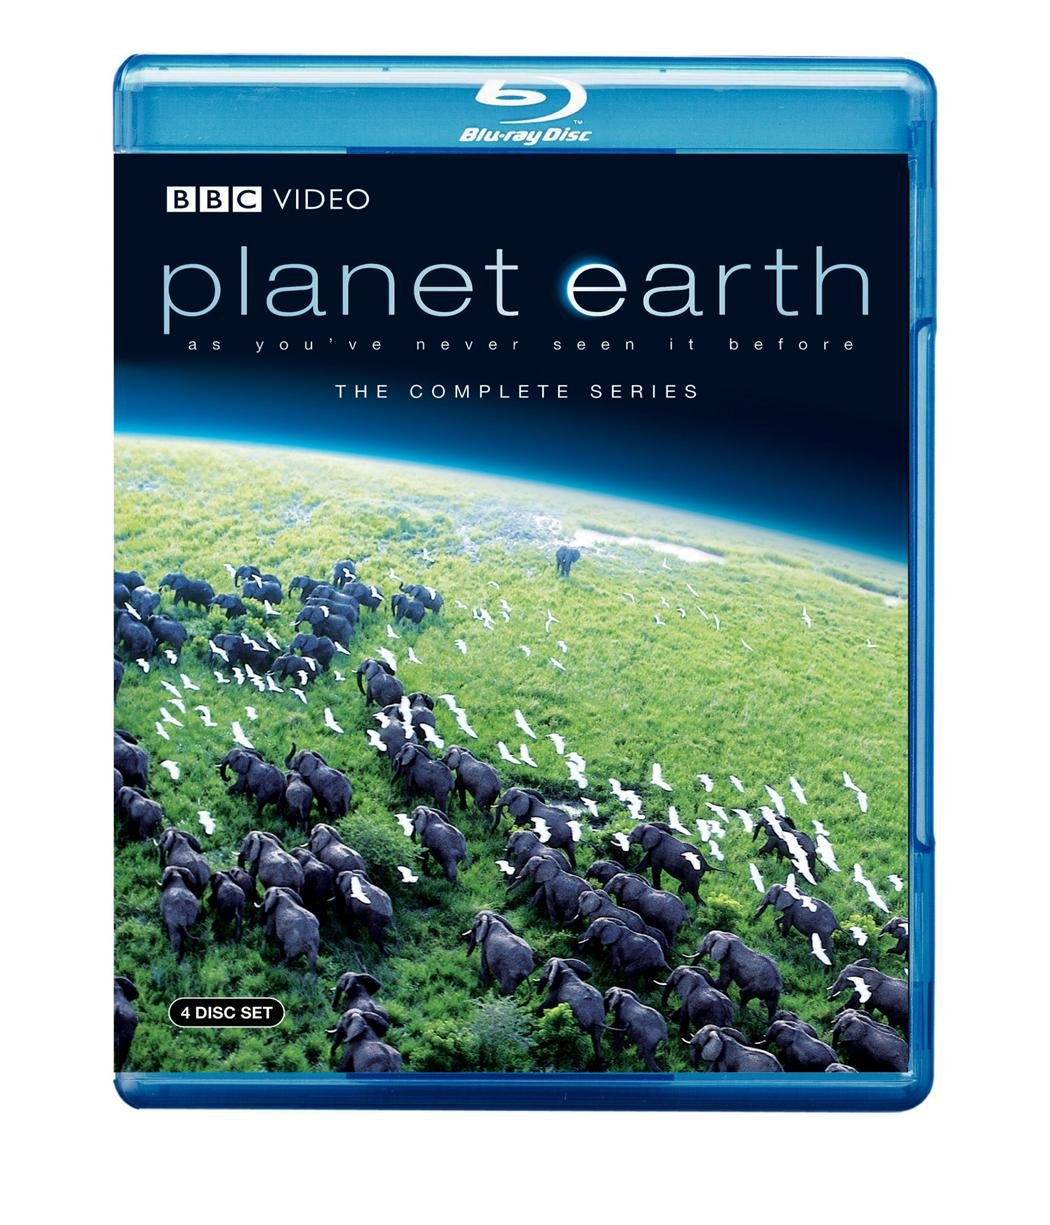 http://www.amazon.com/Planet-Earth-Complete-Series-Blu-ray/dp/B000MRAAJM/ref=as_sl_pc_ss_til?tag=lettfromahome-20&linkCode=w01&linkId=&creativeASIN=B000MRAAJM